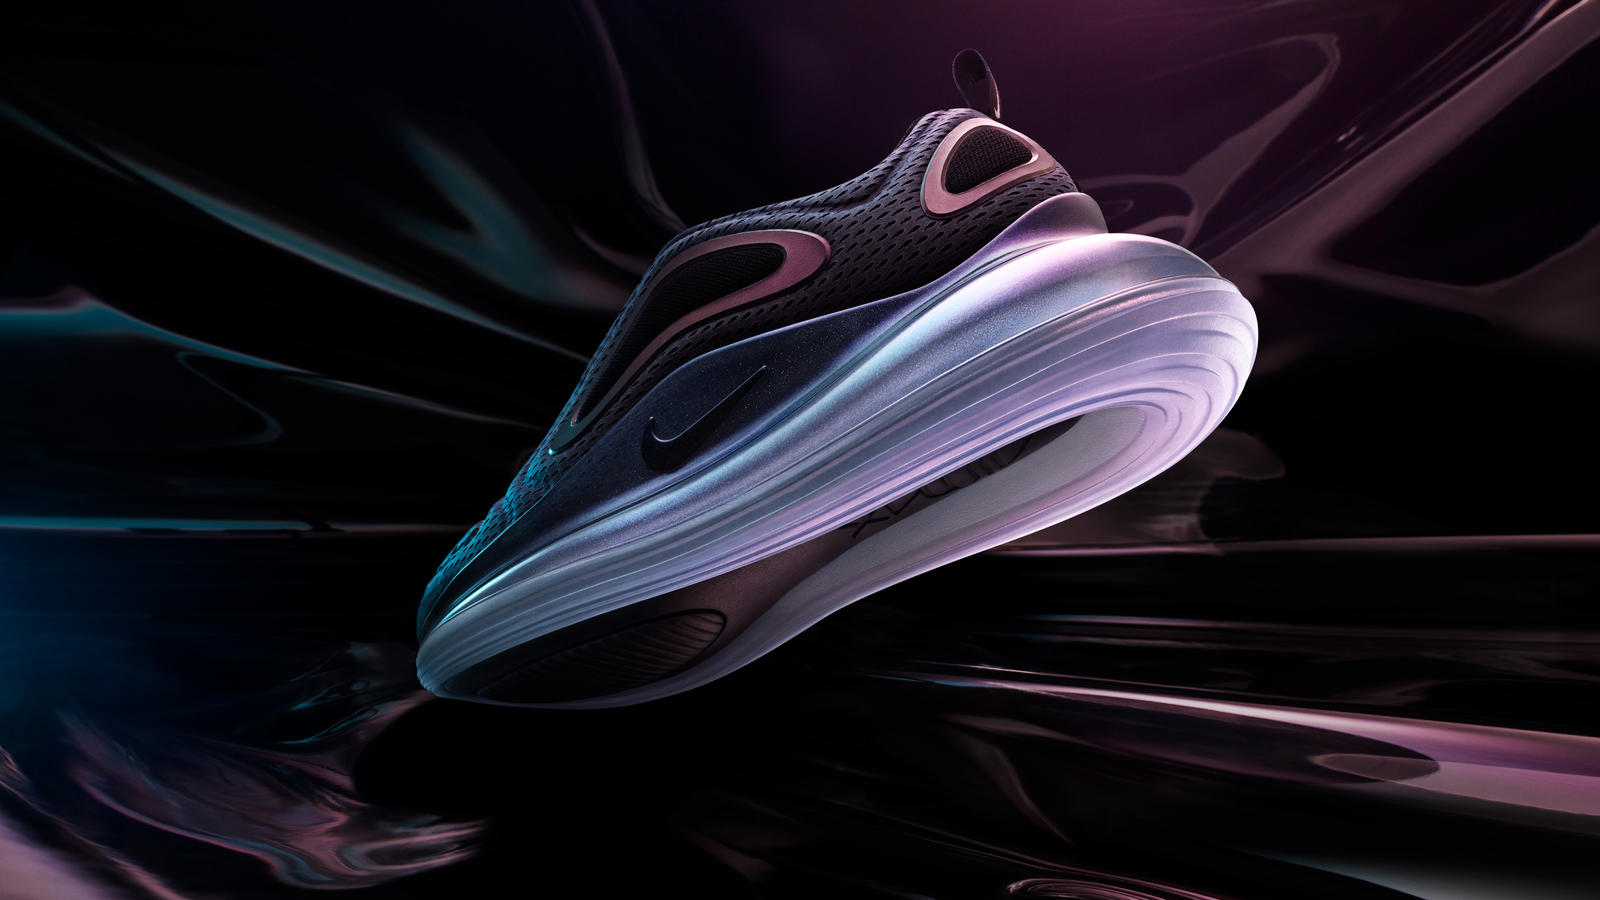 Seven Key Facts About the New Air Max 720 - Nike News